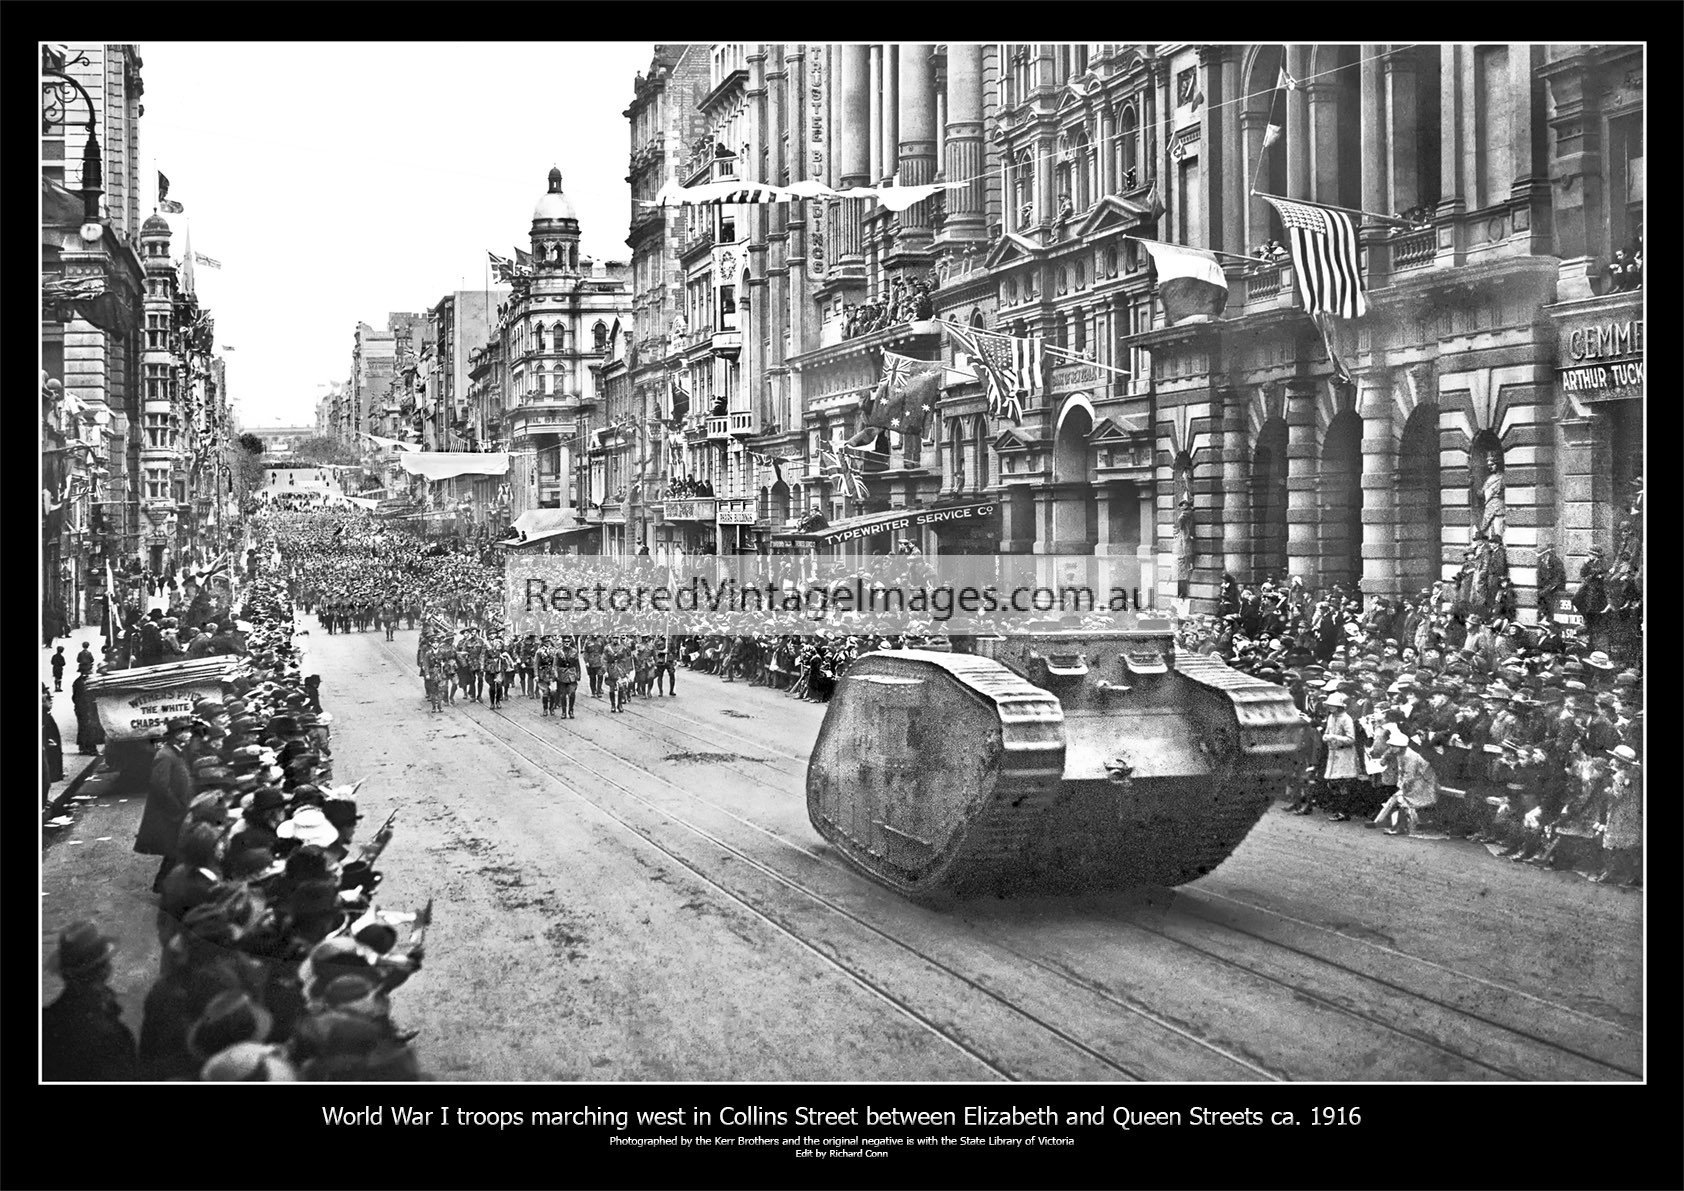 Soldiers Marching Behind A Lozenge Tank In Collins Street WW1